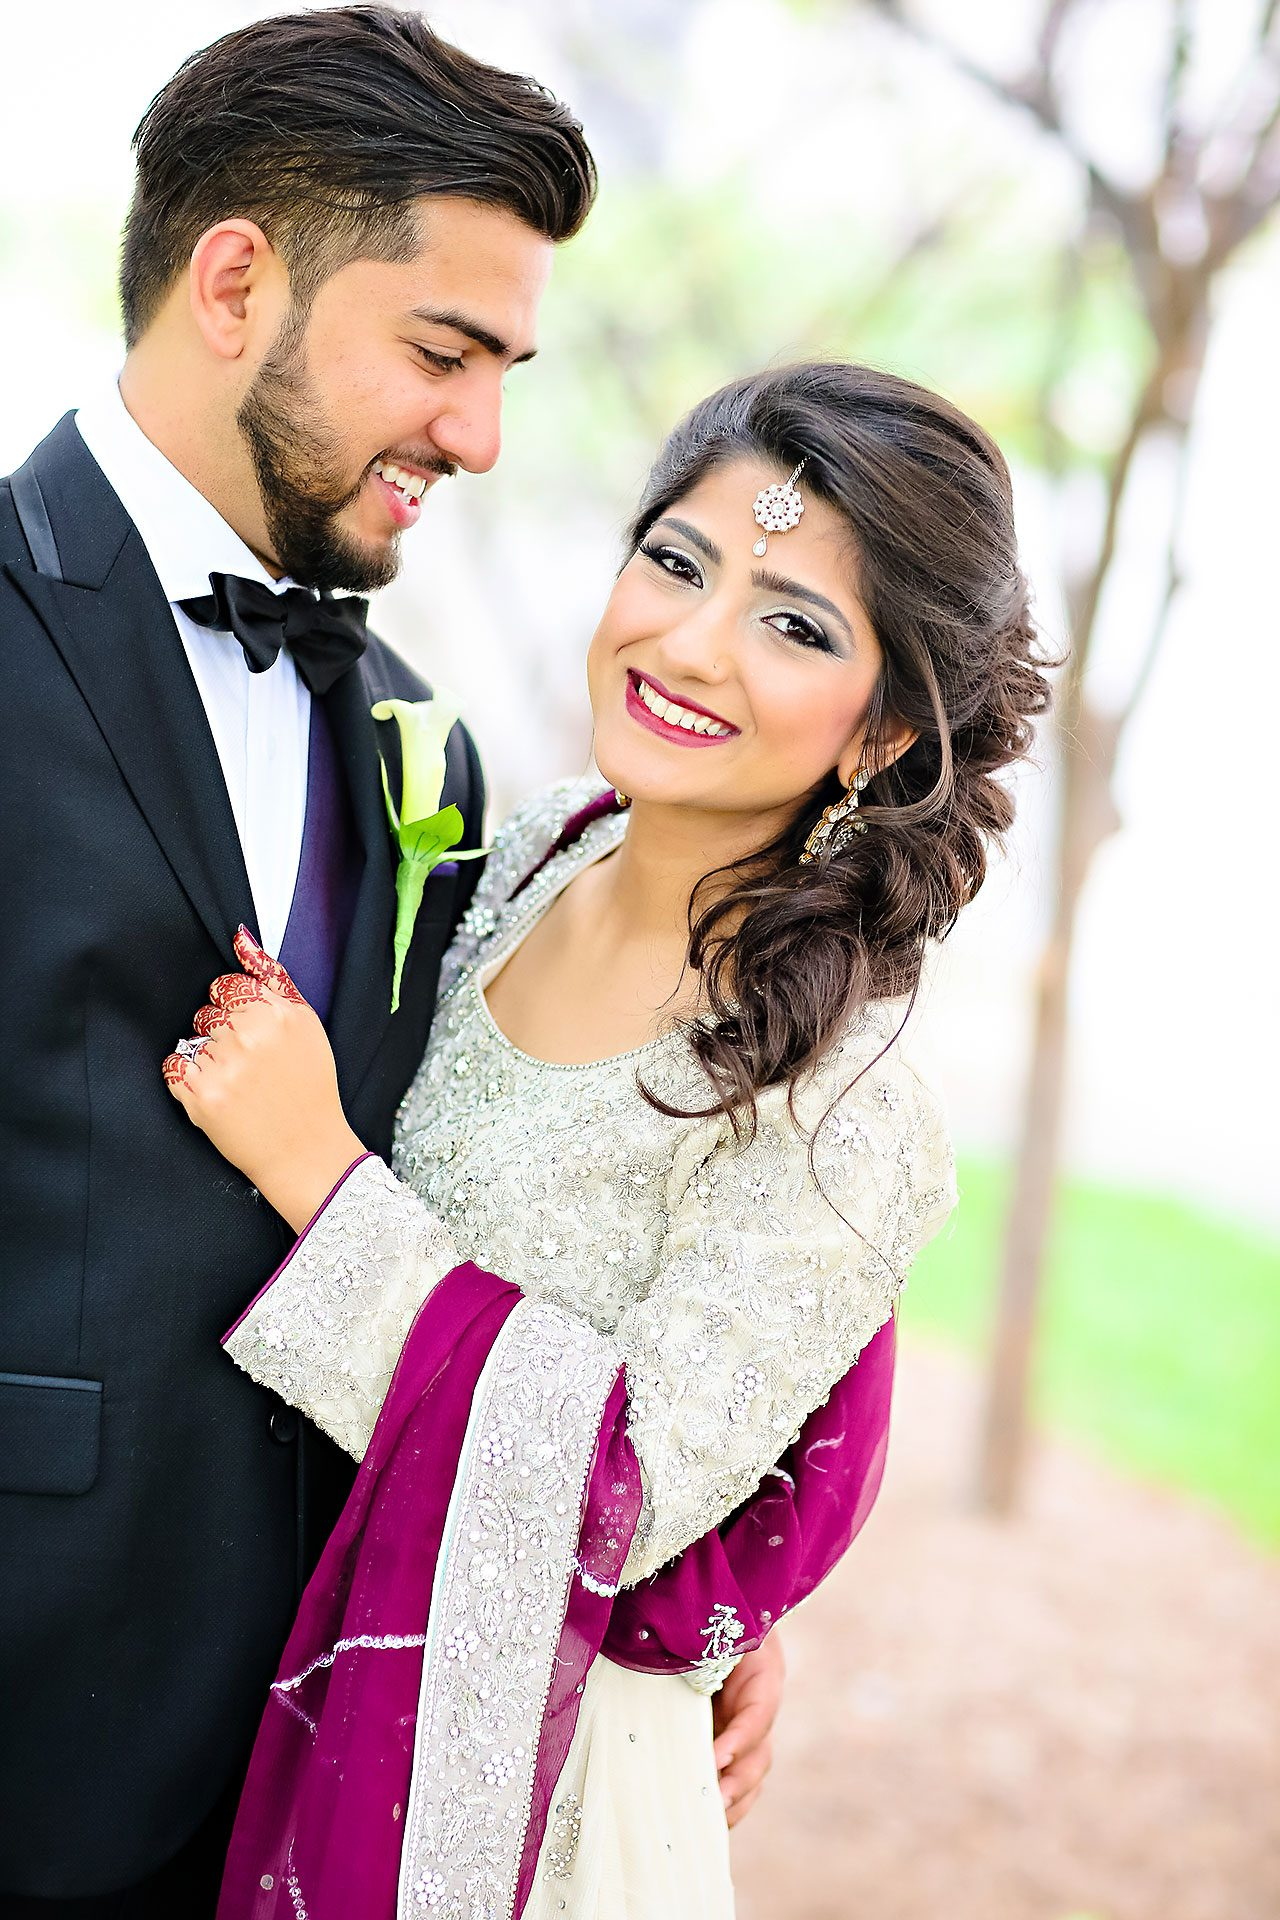 Haseeba Ammar Indianapolis Pakistani Wedding Reception 035